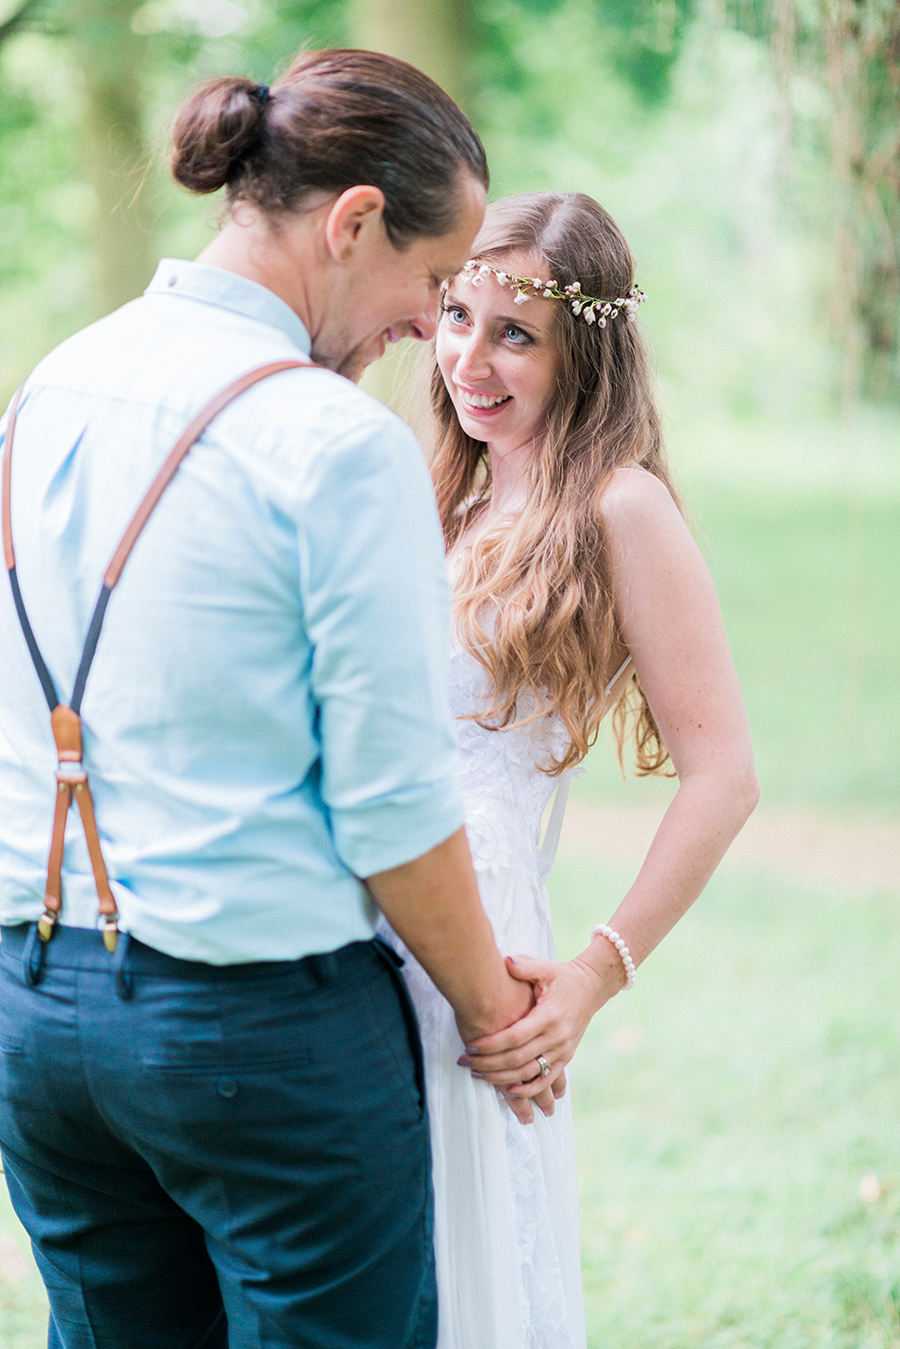 Dreamy boho wedding at Houchins Farm with images by Kathryn Hopkins Photography (42)